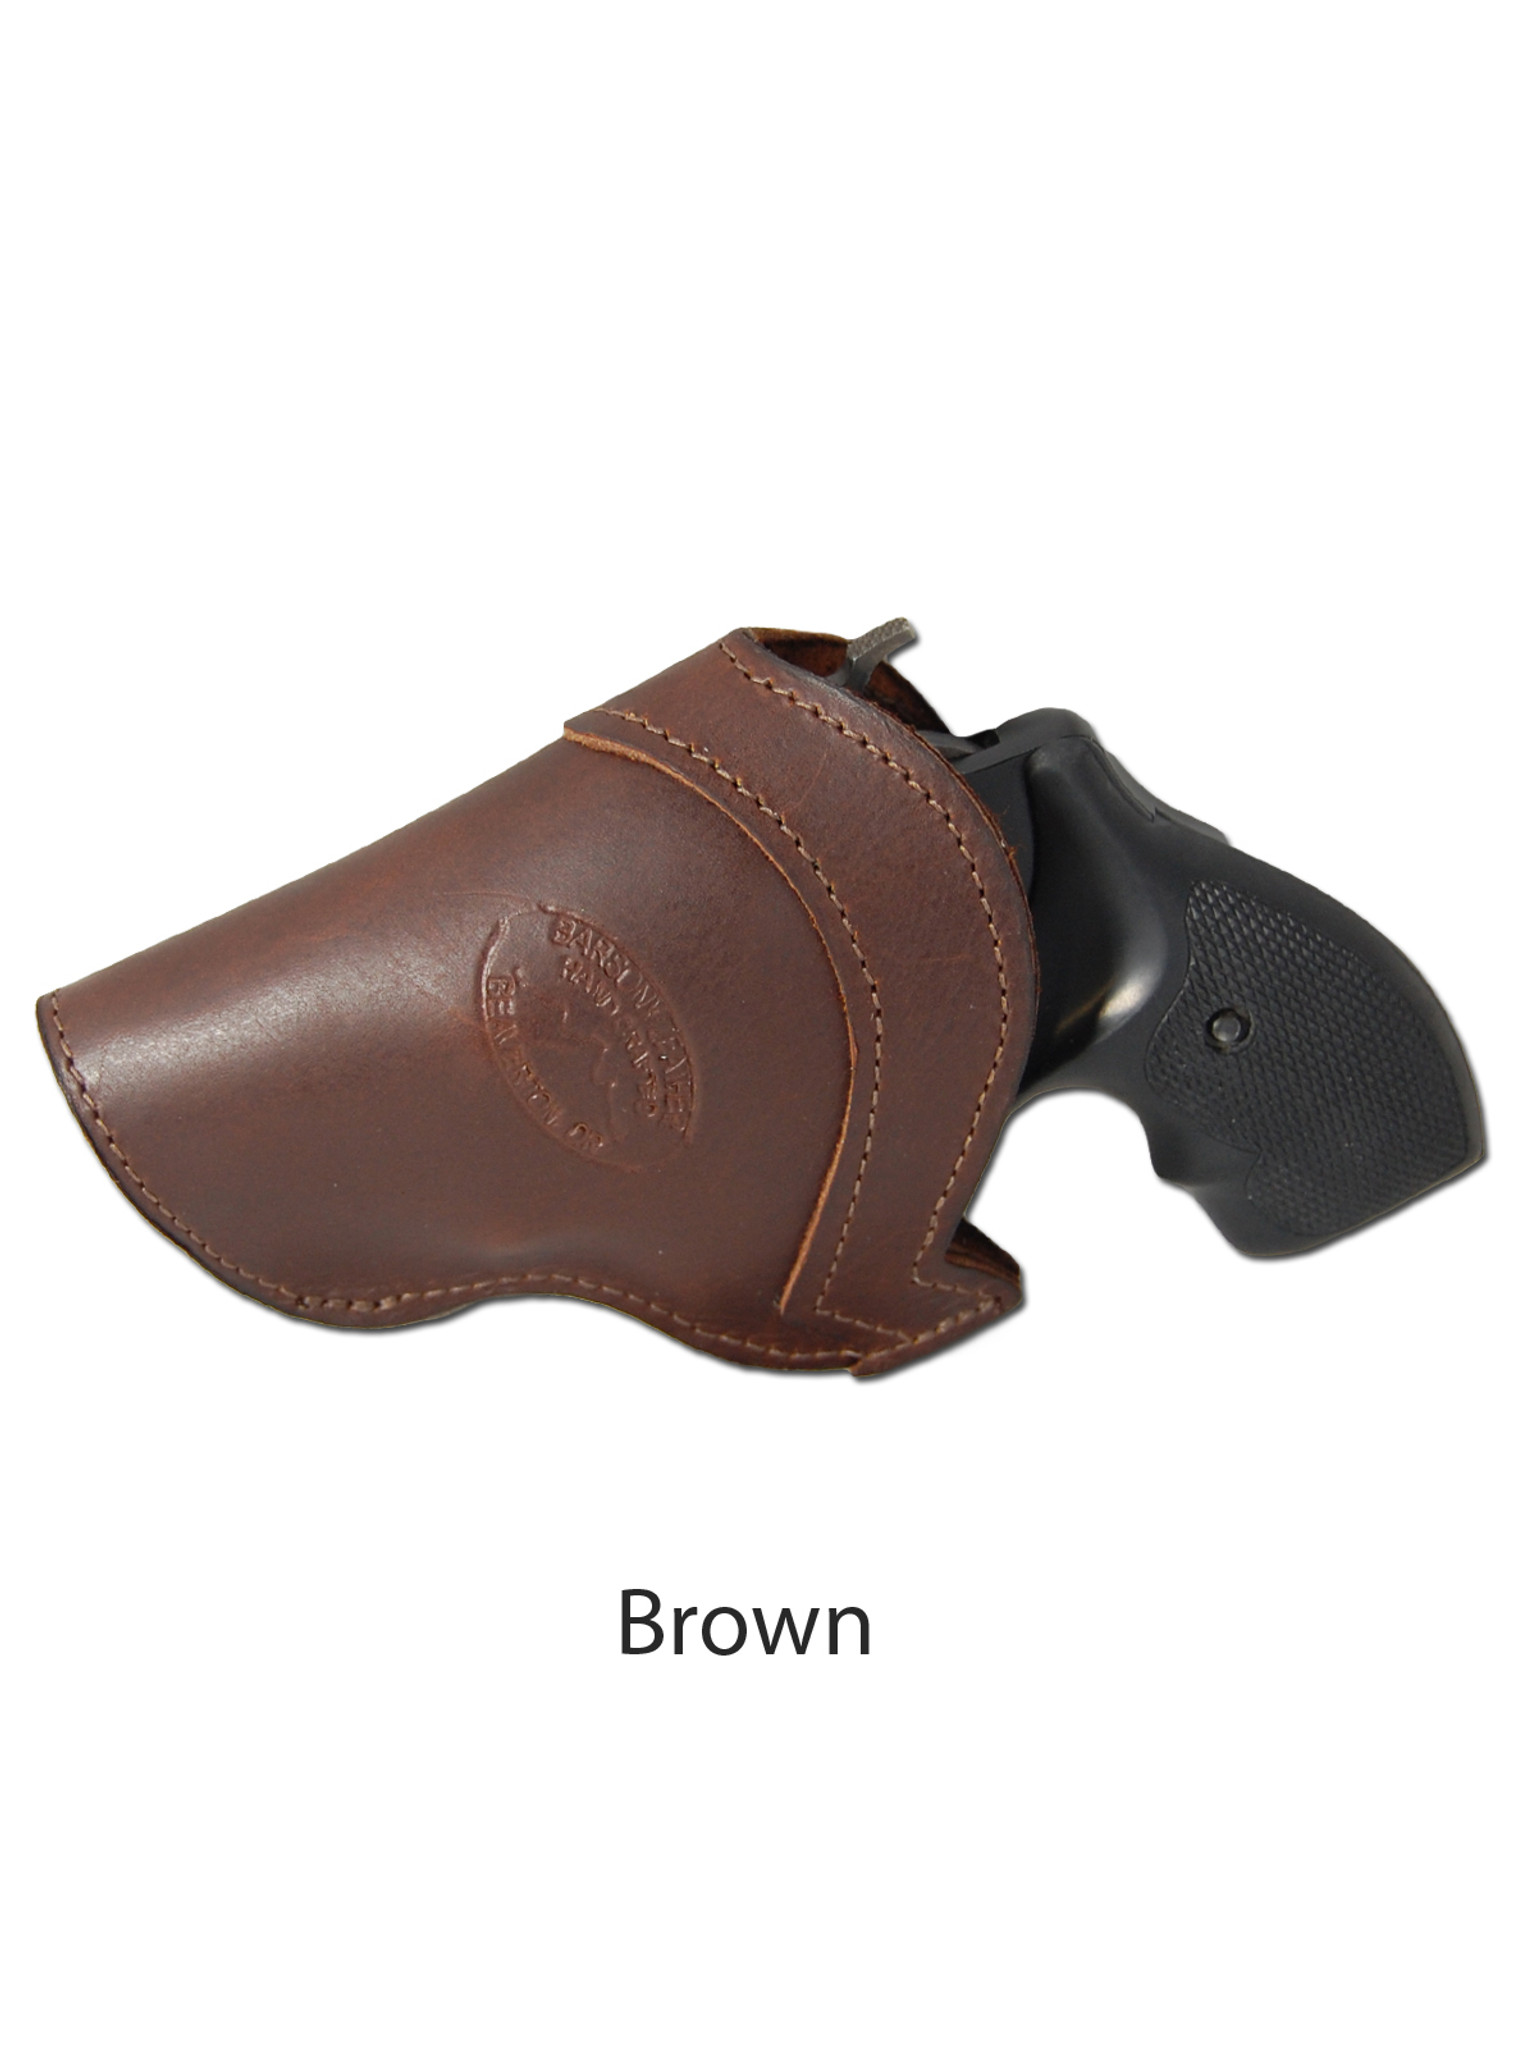 Black Leather Inside the Waistband Holster for 2